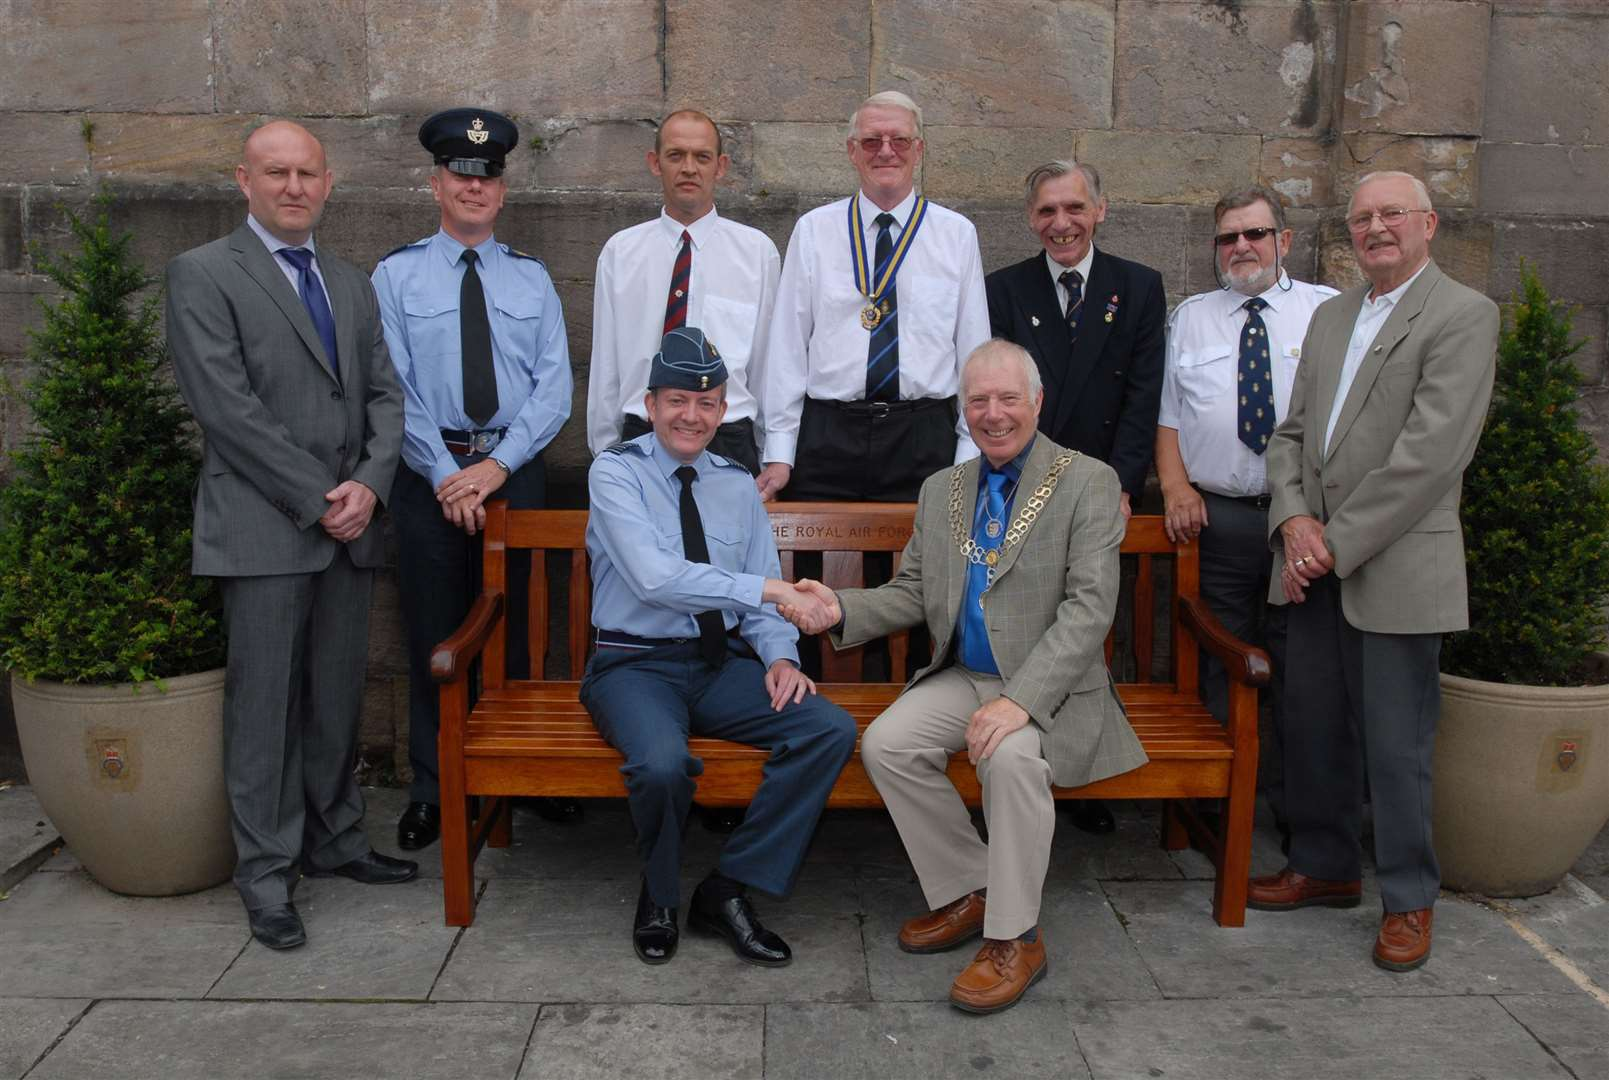 Installation of a memorial bench at Stamford war memorial by RAF Wittering. From left, back, Rik Pepper, WO Steve Poulton, Shaun Arthur, John Copeland, Bill Turner, Ray Beresford, and John Binder. Front, RAF Wittering group captain, Richard Knighton, and former Stamford mayor, David Brailsford.